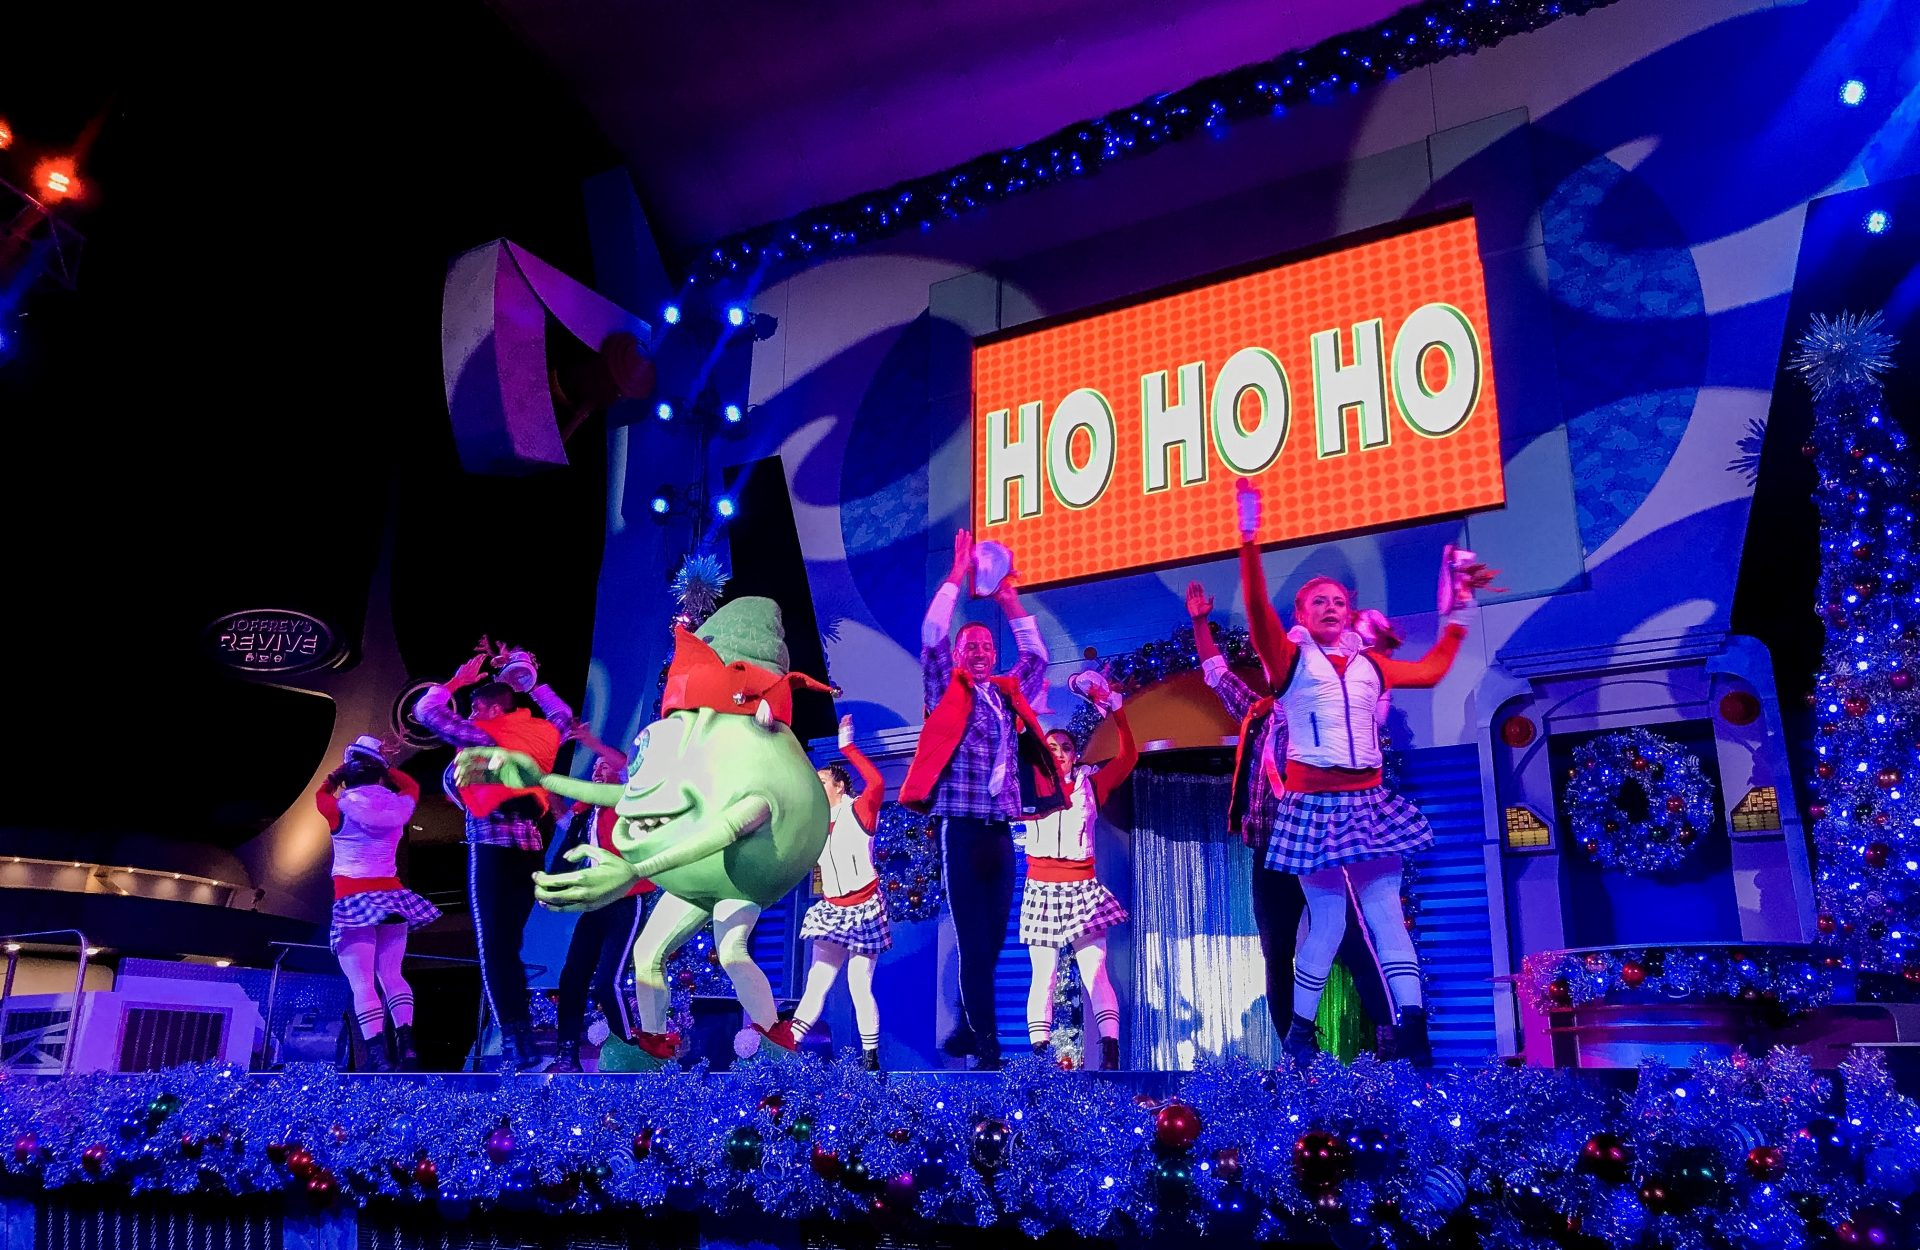 A Totally Tomorrowland Christmas featuring Stitch at Magic Kingdom Mickey's Very Merry Christmas Party